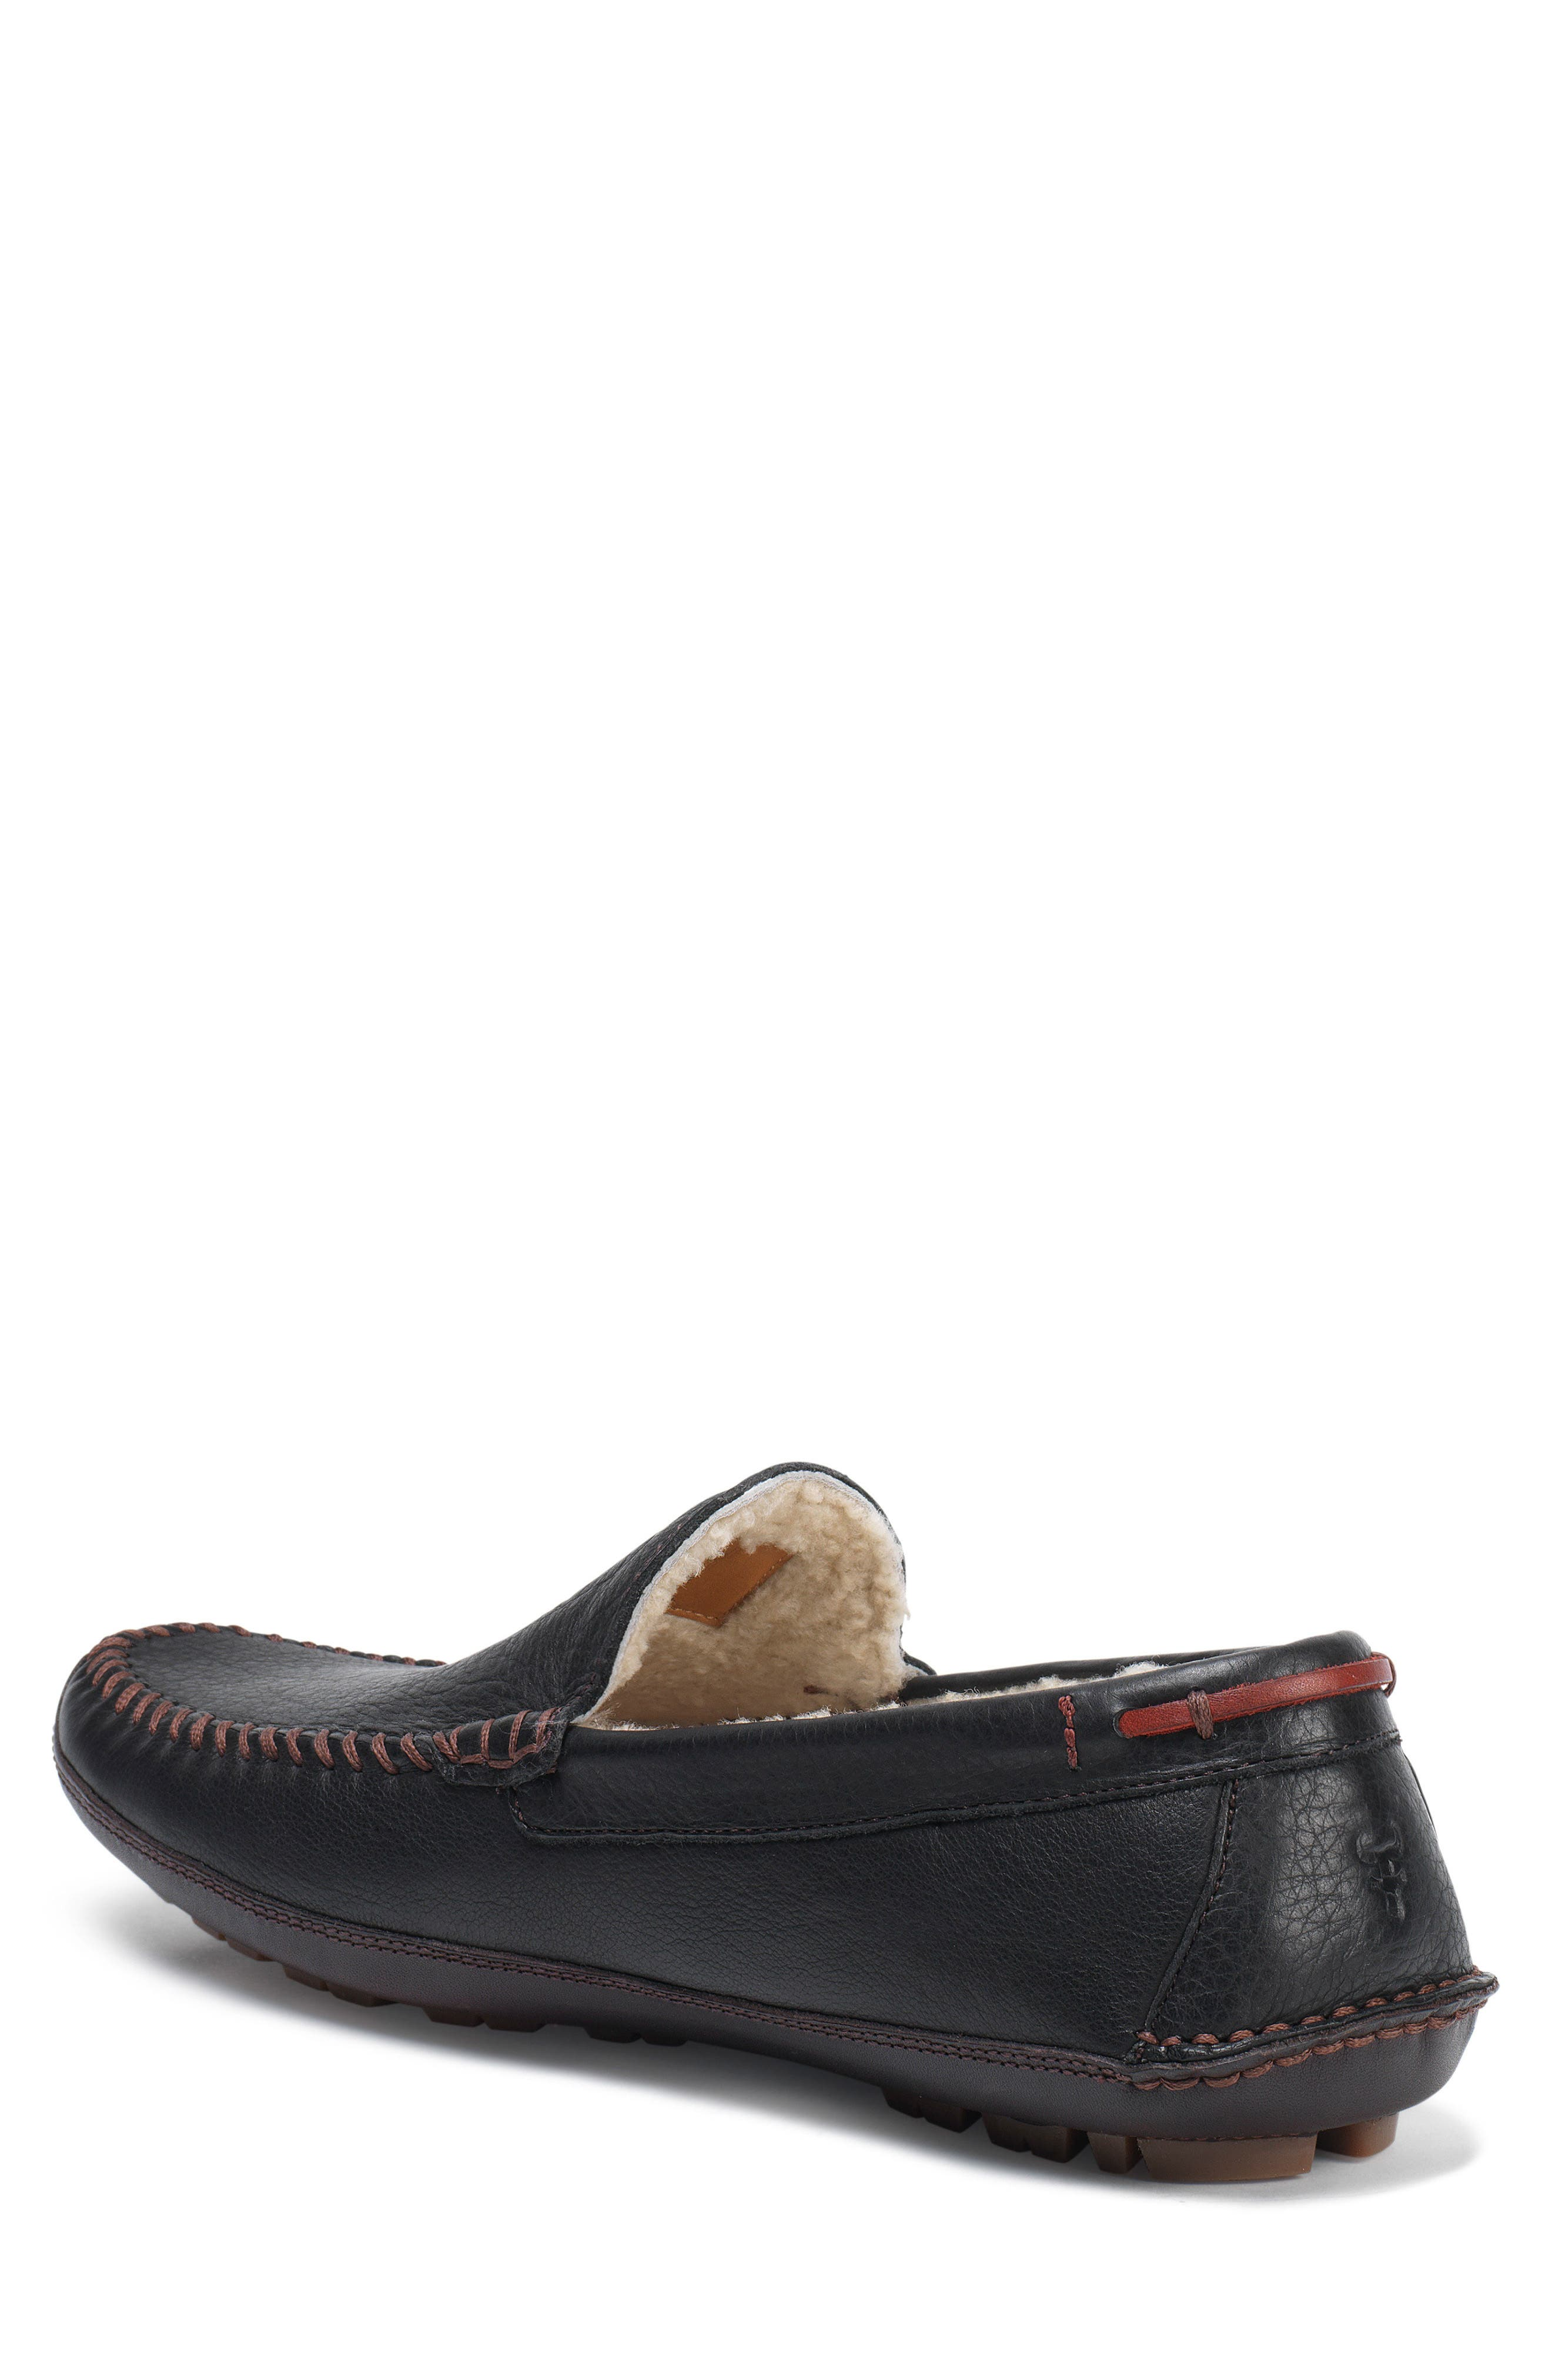 Denton Driving Shoe with Genuine Shearling,                             Alternate thumbnail 2, color,                             Black Leather/ Shearling